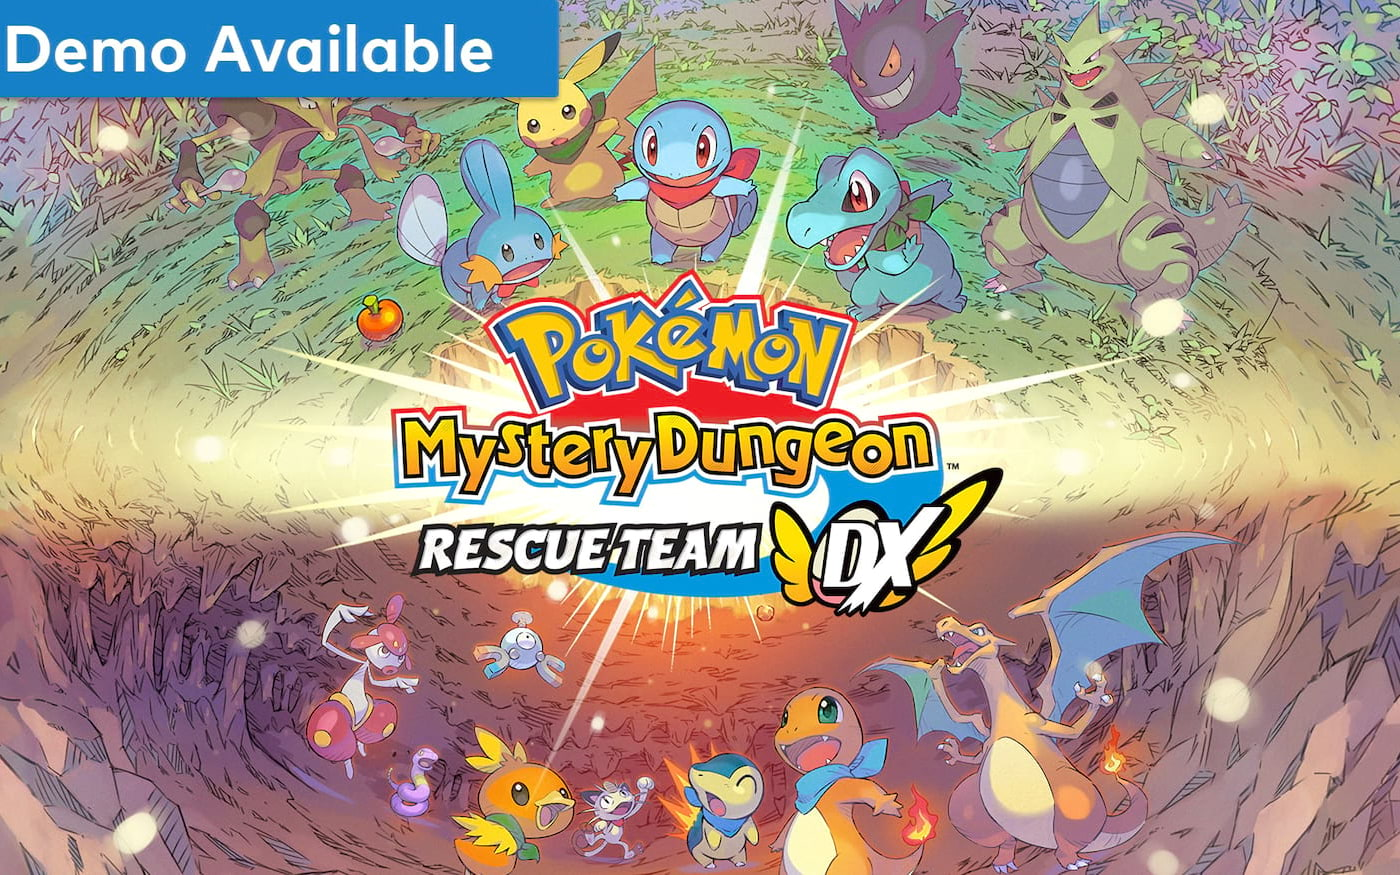 Switch receberá mais um game, o Pokémon Myystery Dungeon Rescue Team DX